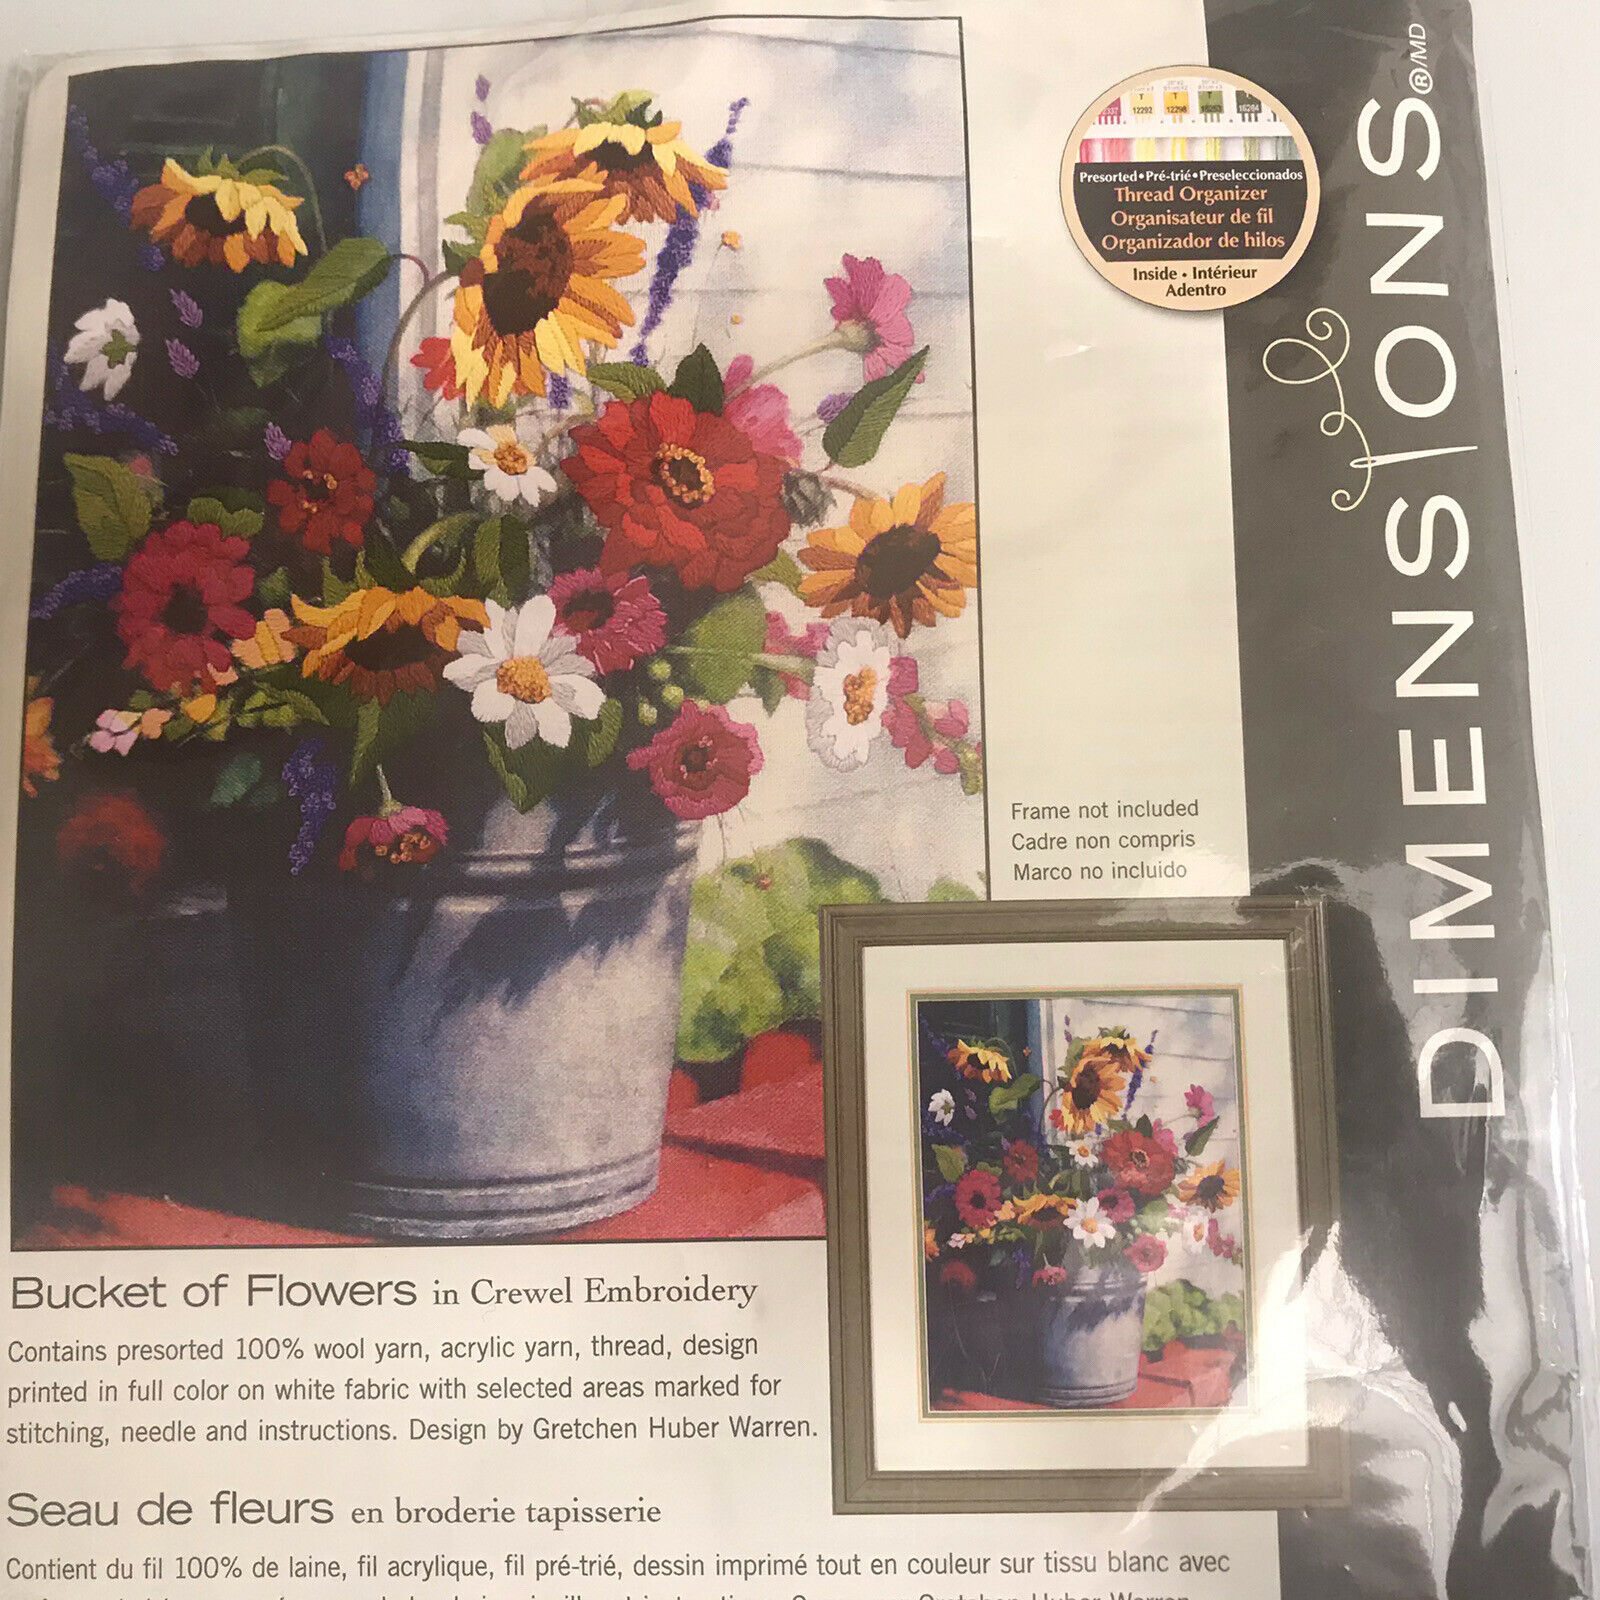 Dimensions Crewel Embroidery Kit Bucket of Flowers 1534 on Printed Fabric